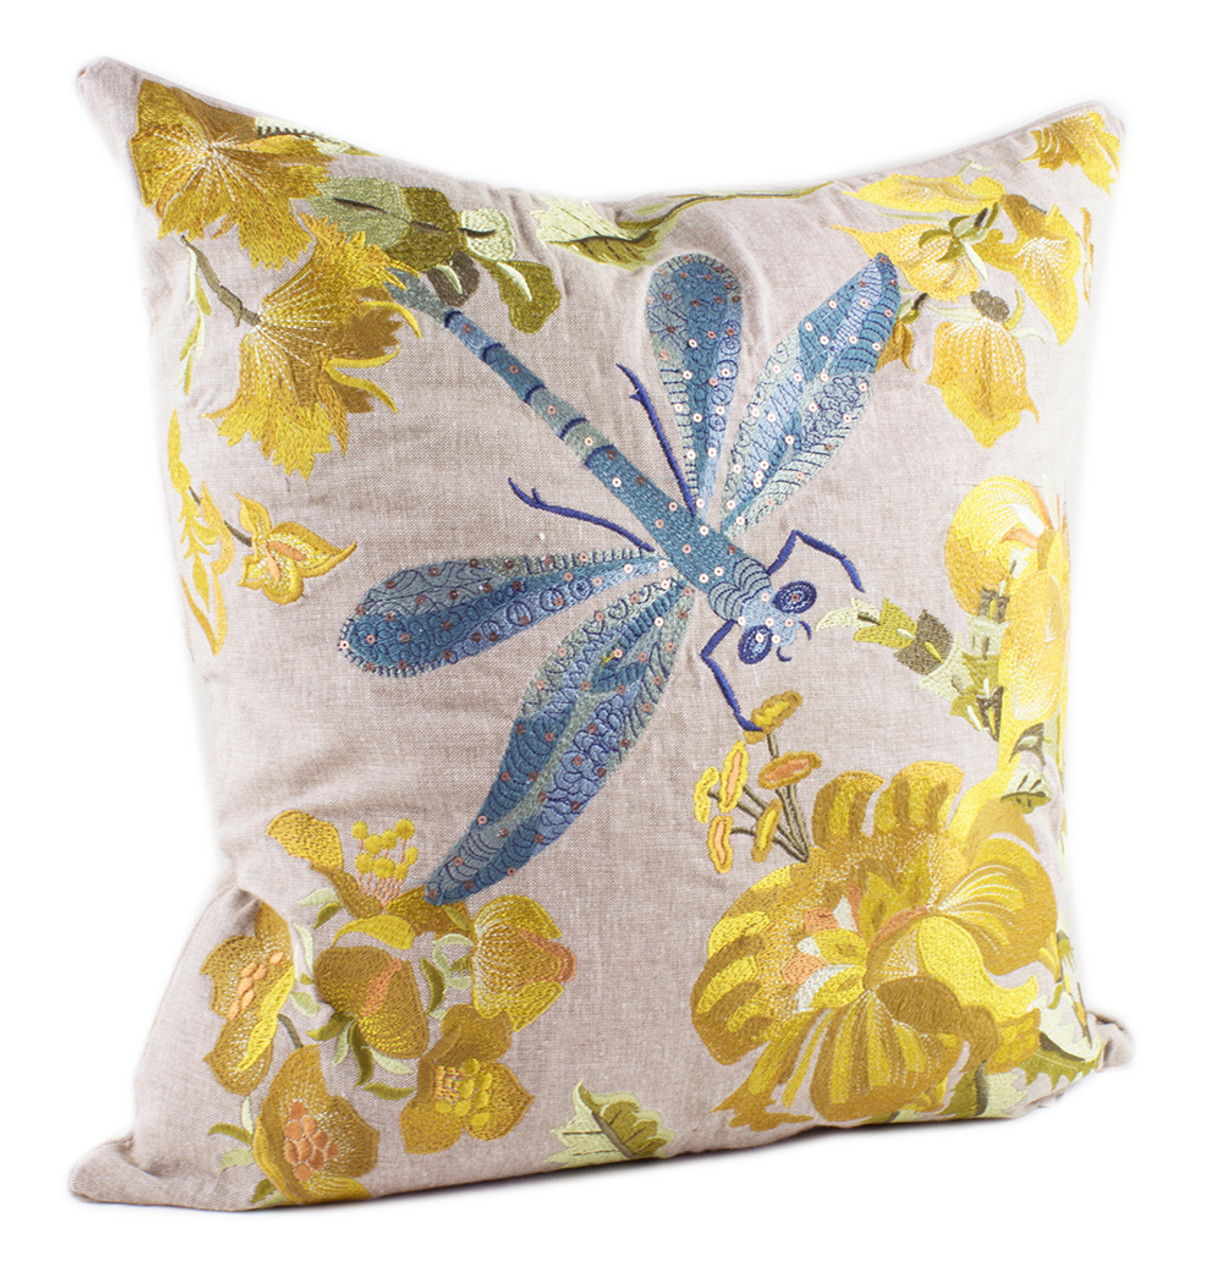 Embroidered Collection Decorative Throw Pillow, Filler Included, 18-Inch Square (100% Cotton ...